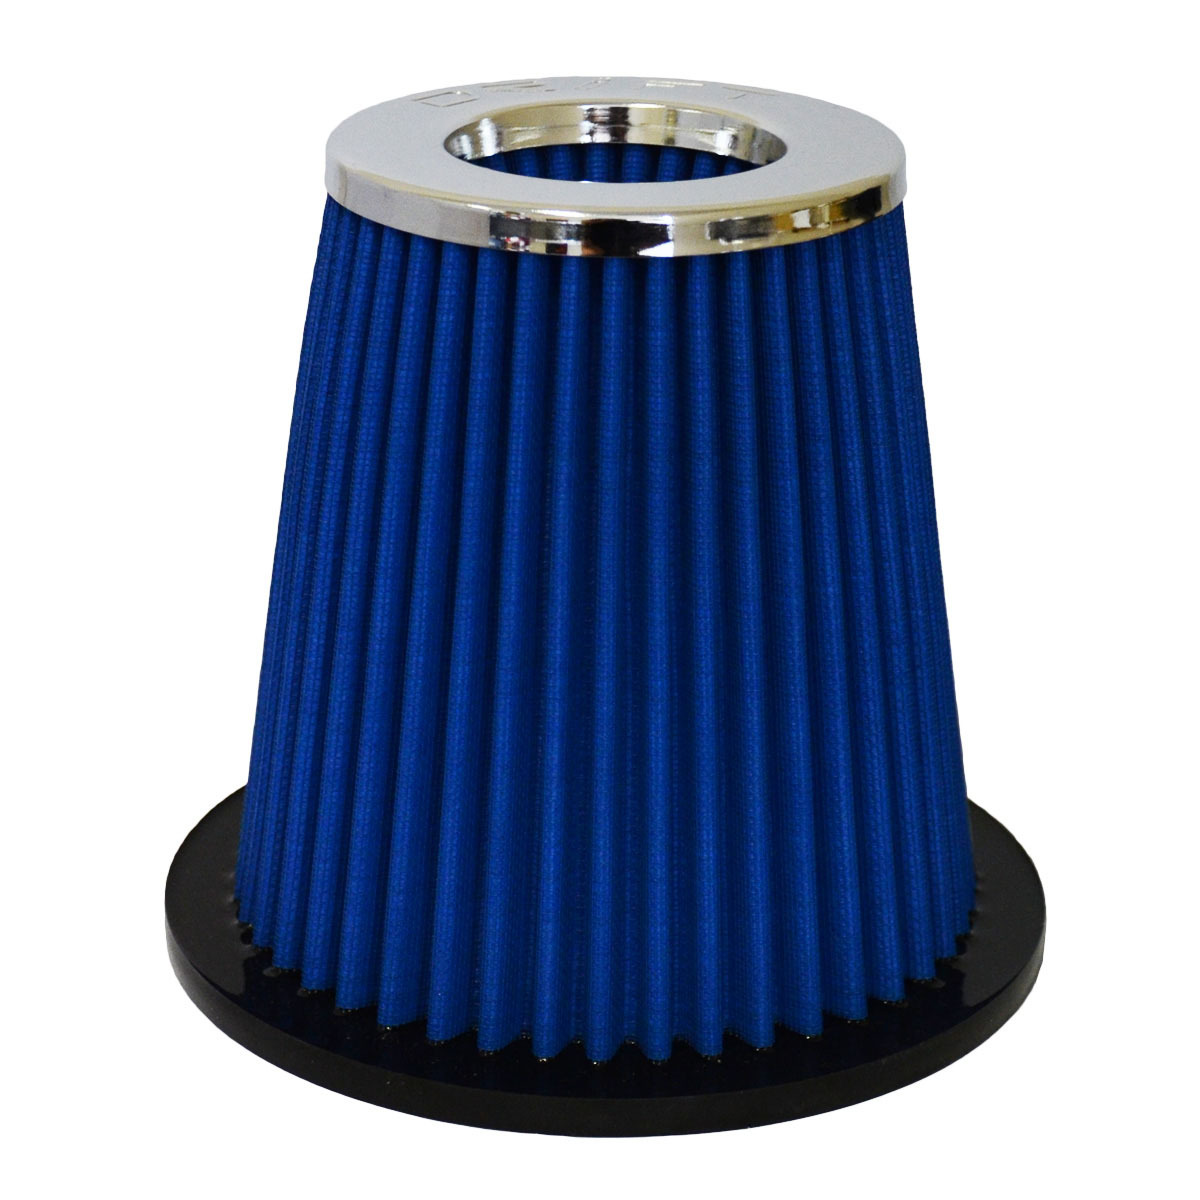 Drift Round Air Filter (A1492)